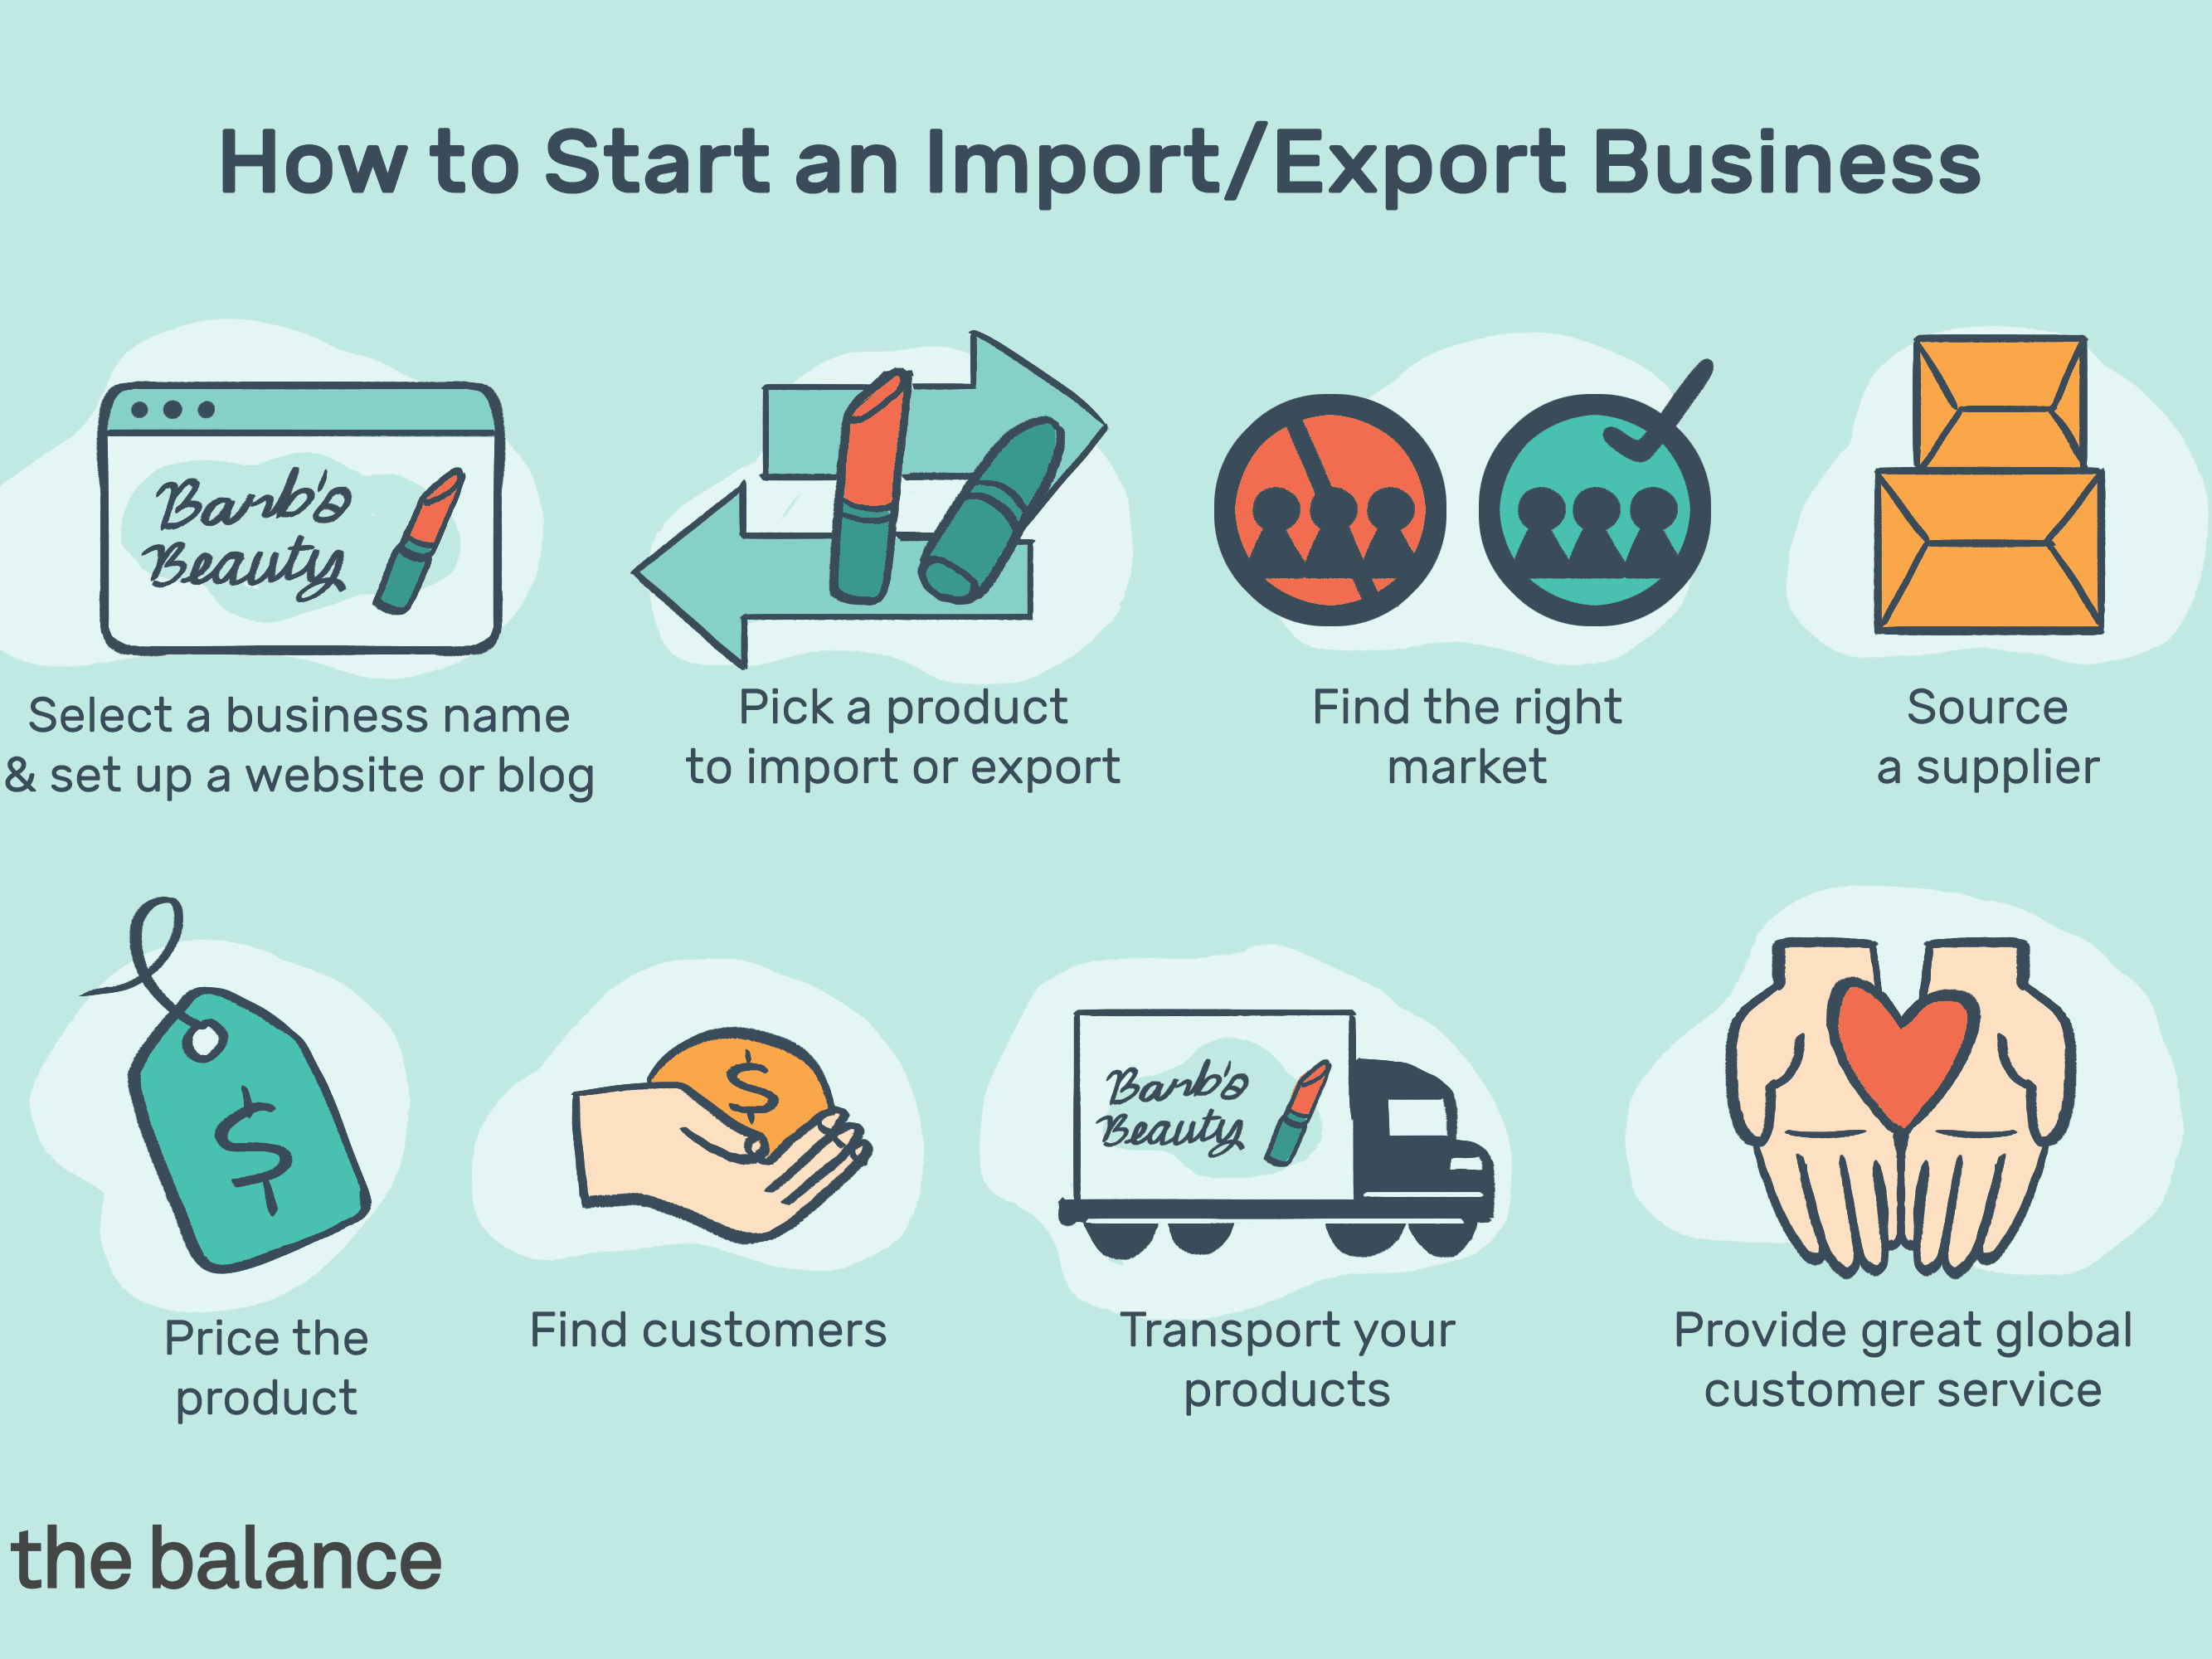 Steps to Starting an Import/Export Business